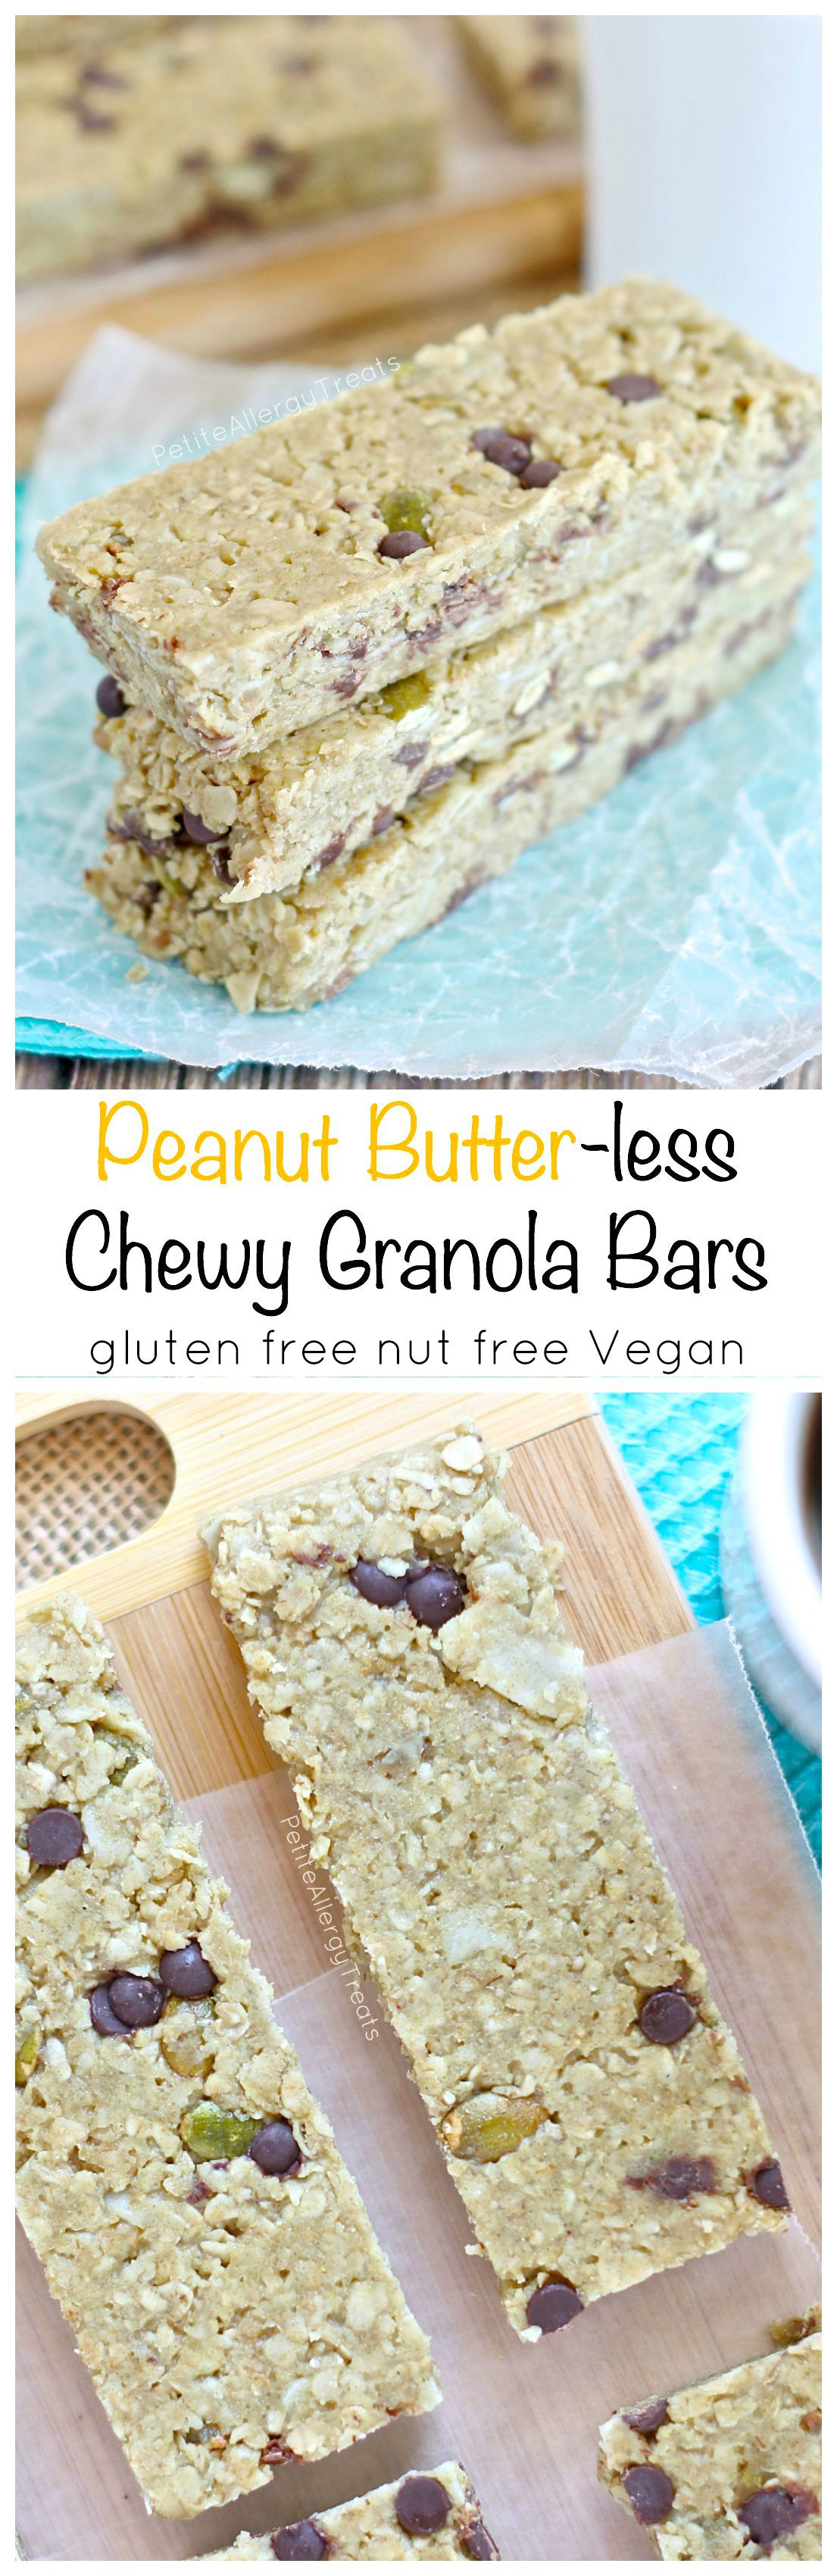 Chewy Granola Bars Peanut Butter-free (nut free gluten free Vegan) A soft chewy granola bar with all the flavor of peanut butter but made nut-free!